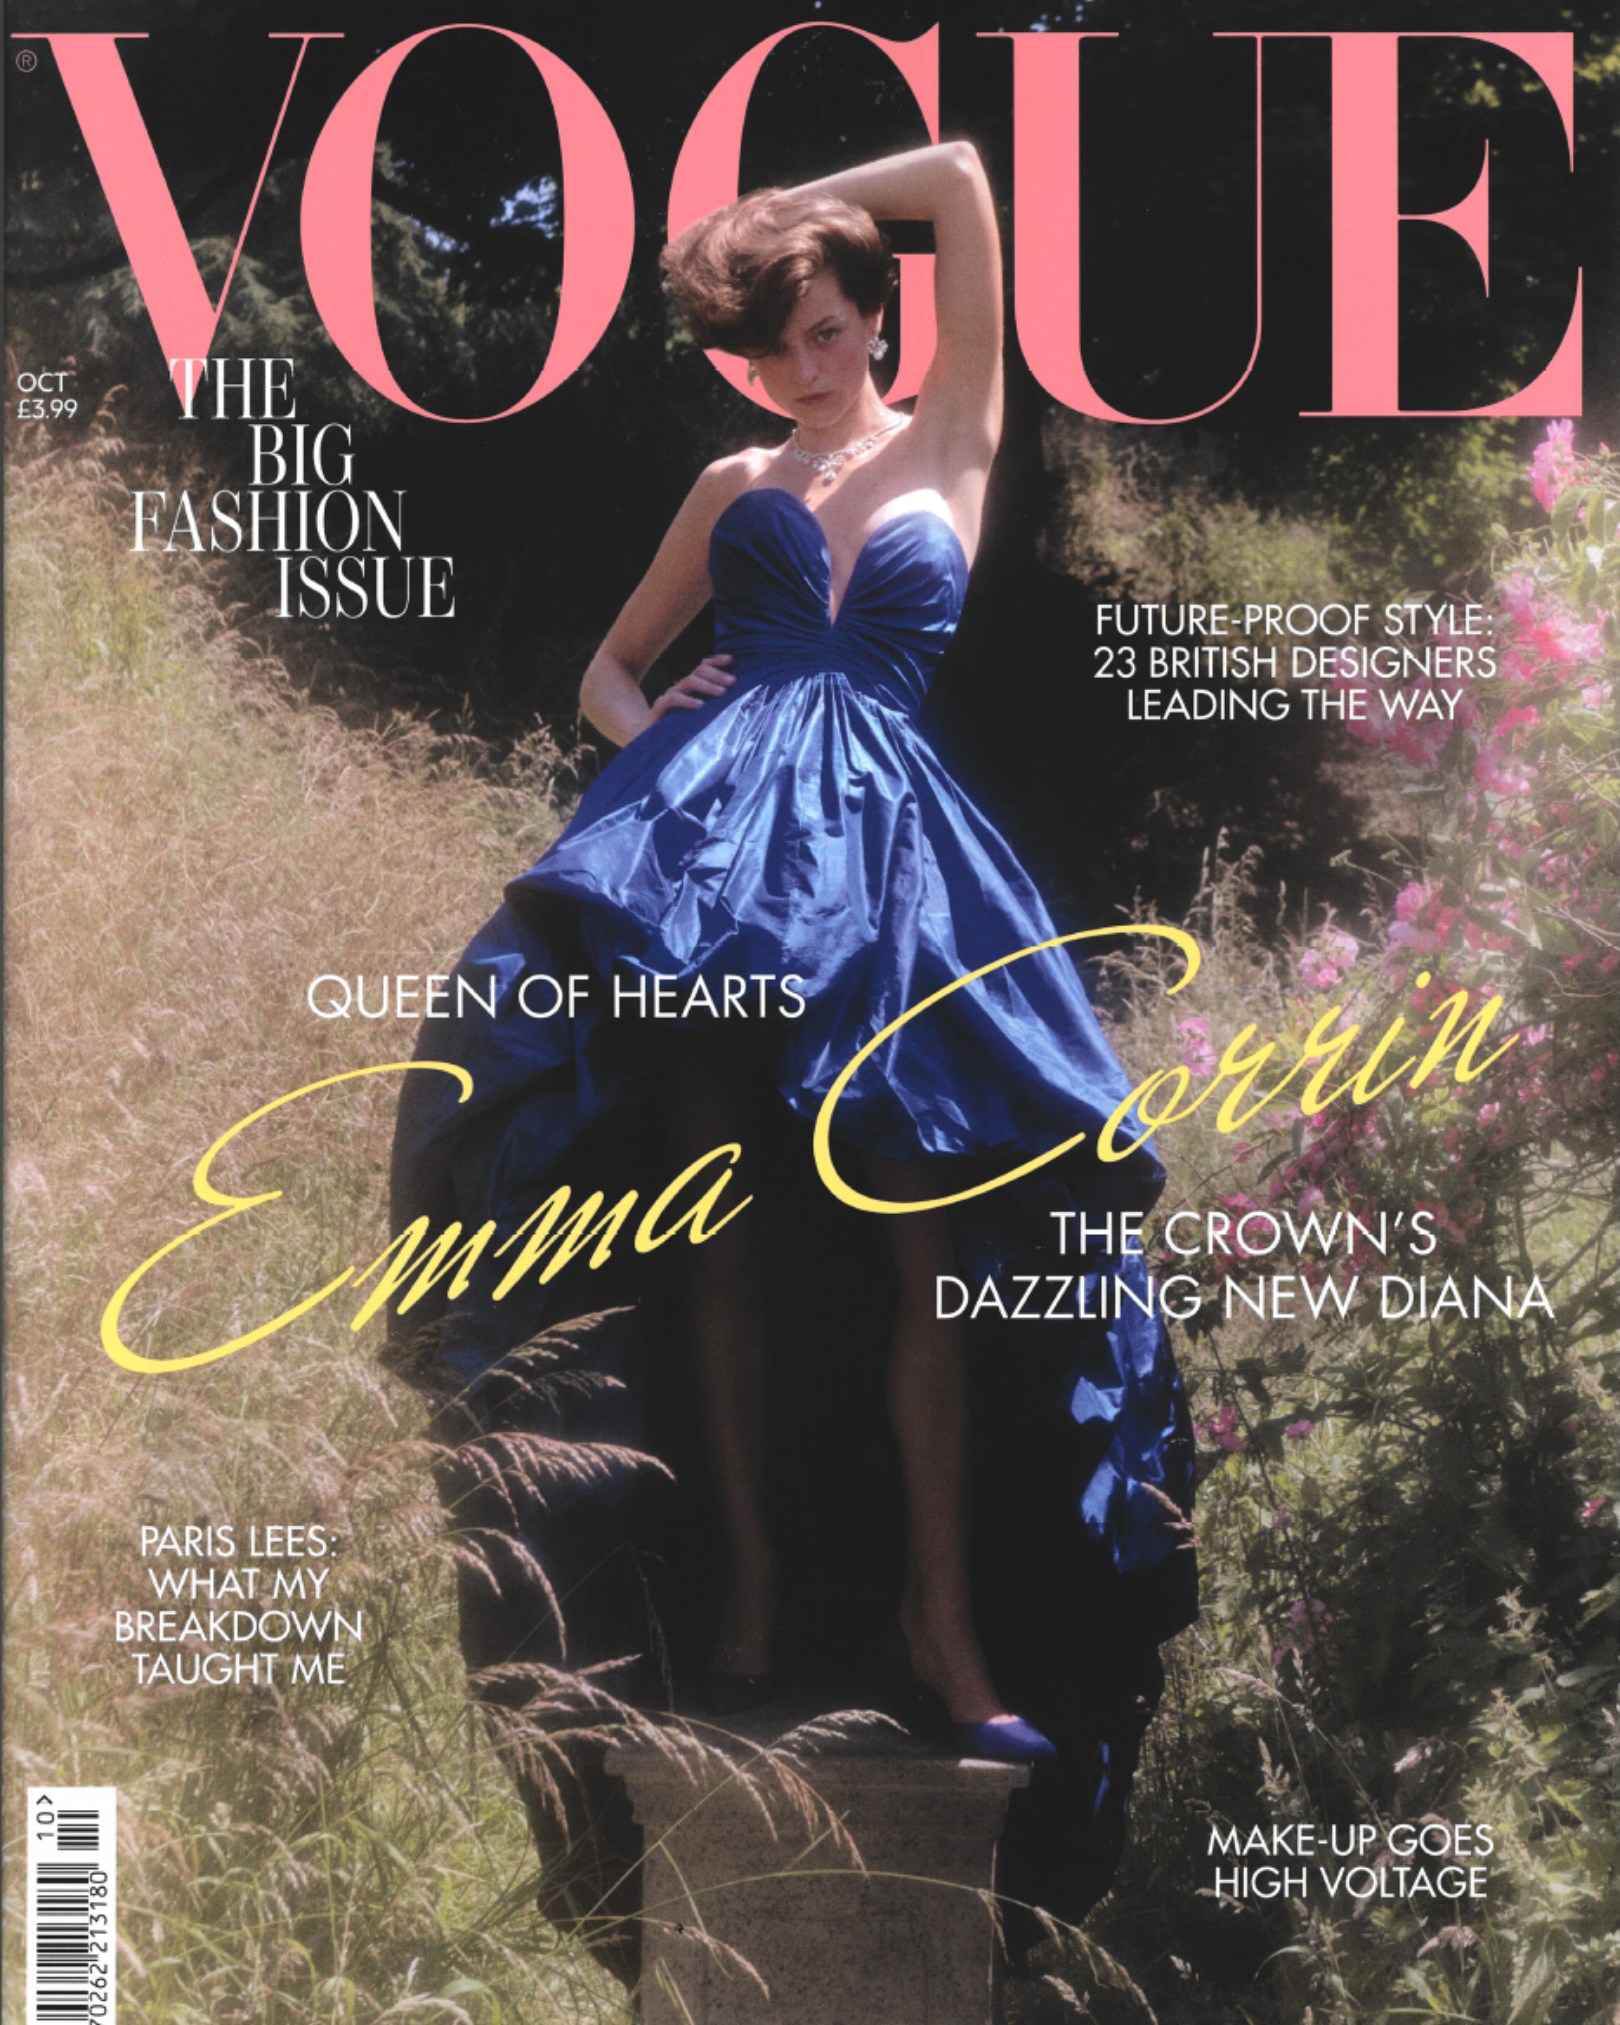 VOGUE Cover - NGOLD Gstaad Sep 2020